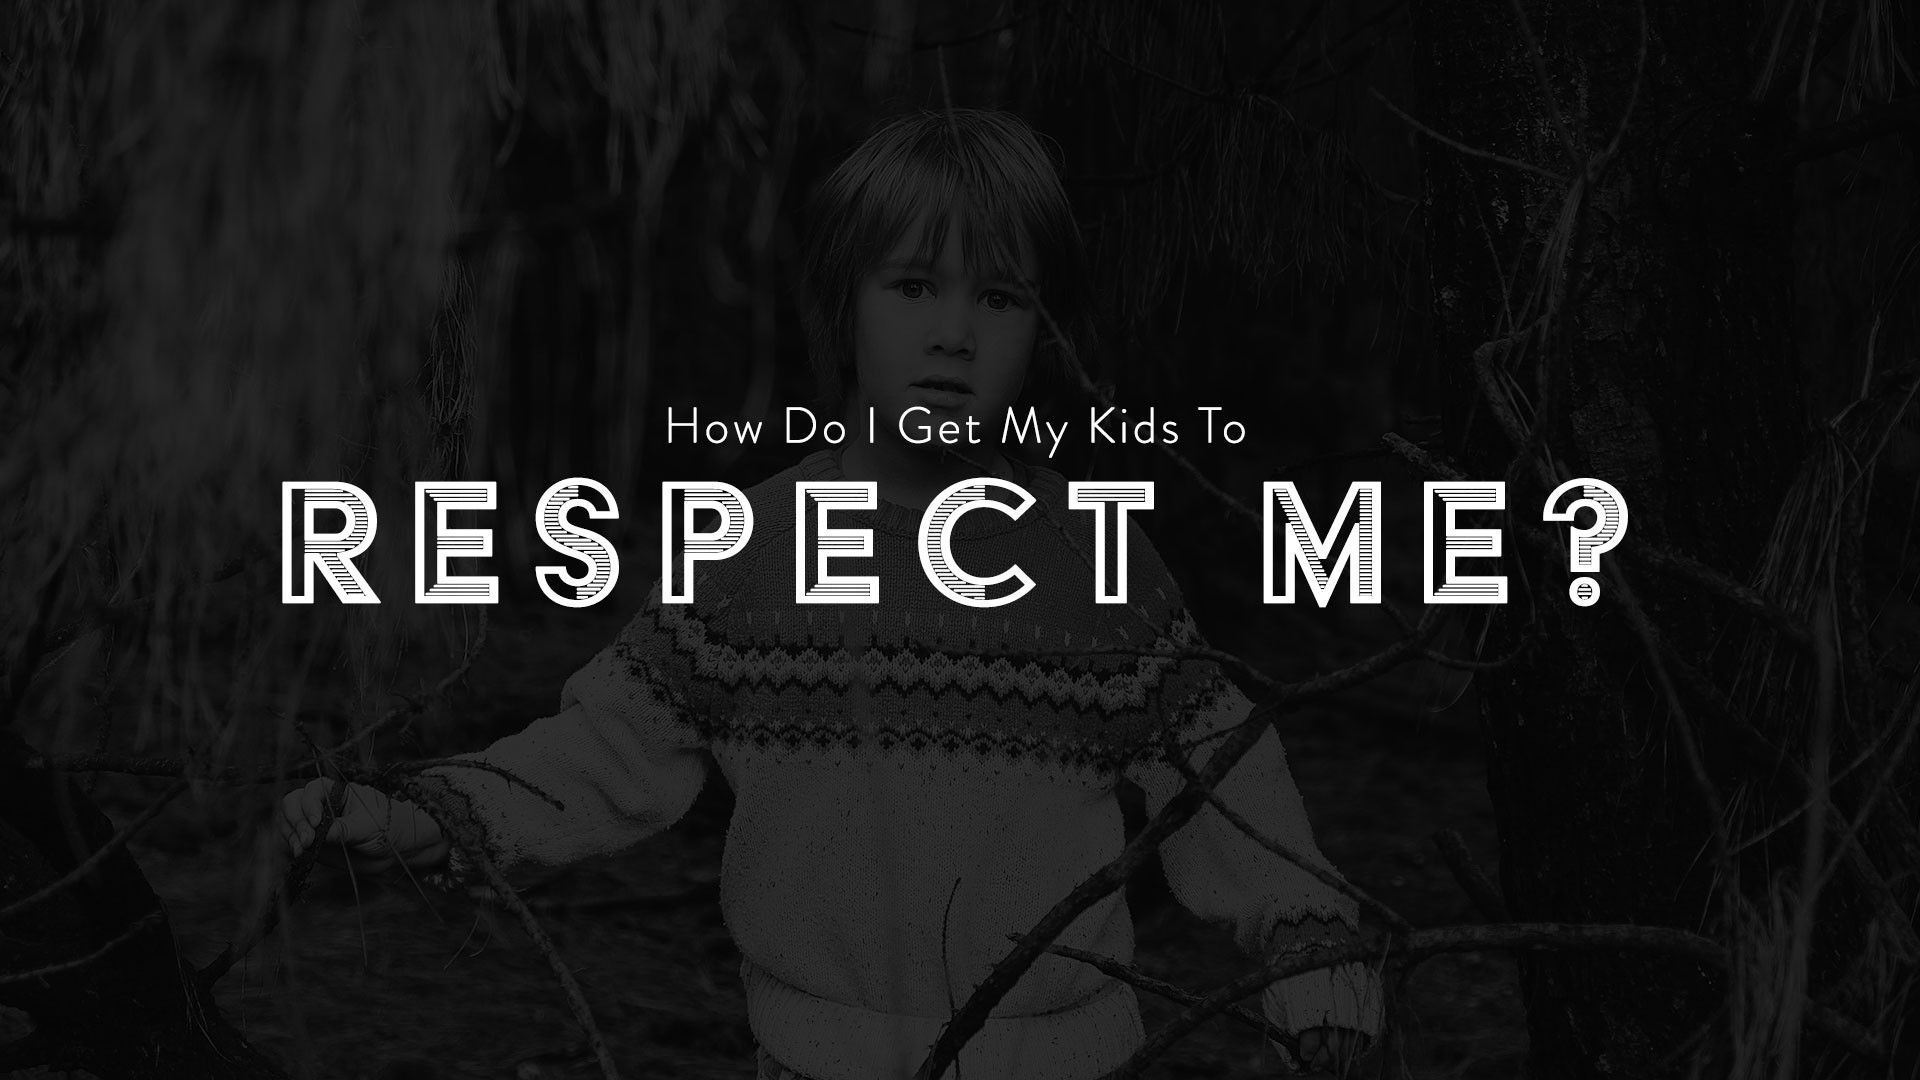 How Do I Get My Kids To Respect Me?